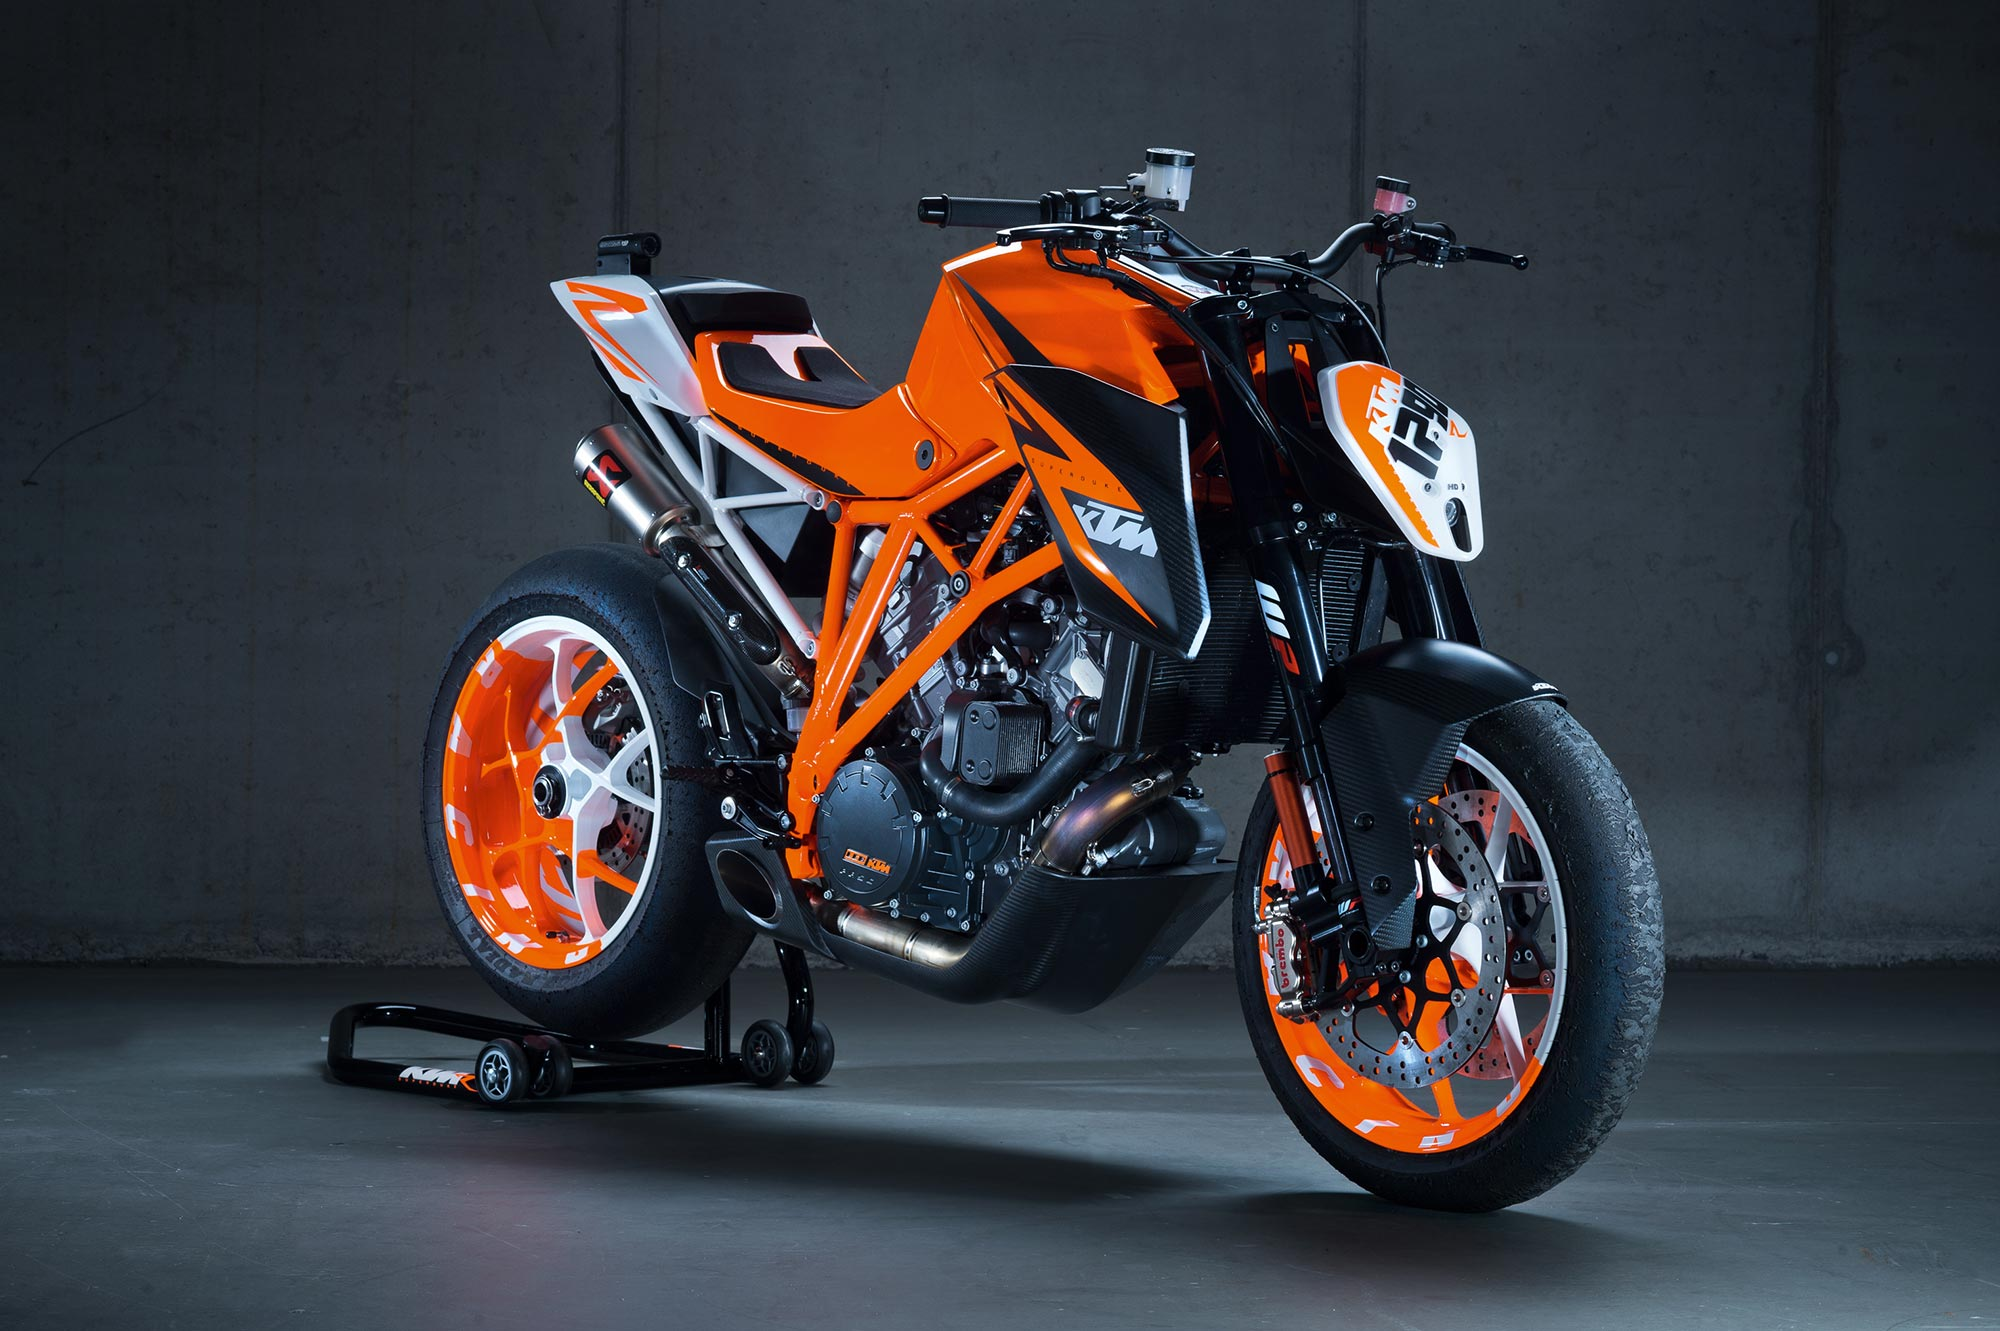 2014 ktm super duke 1290 r archives asphalt rubber. Black Bedroom Furniture Sets. Home Design Ideas